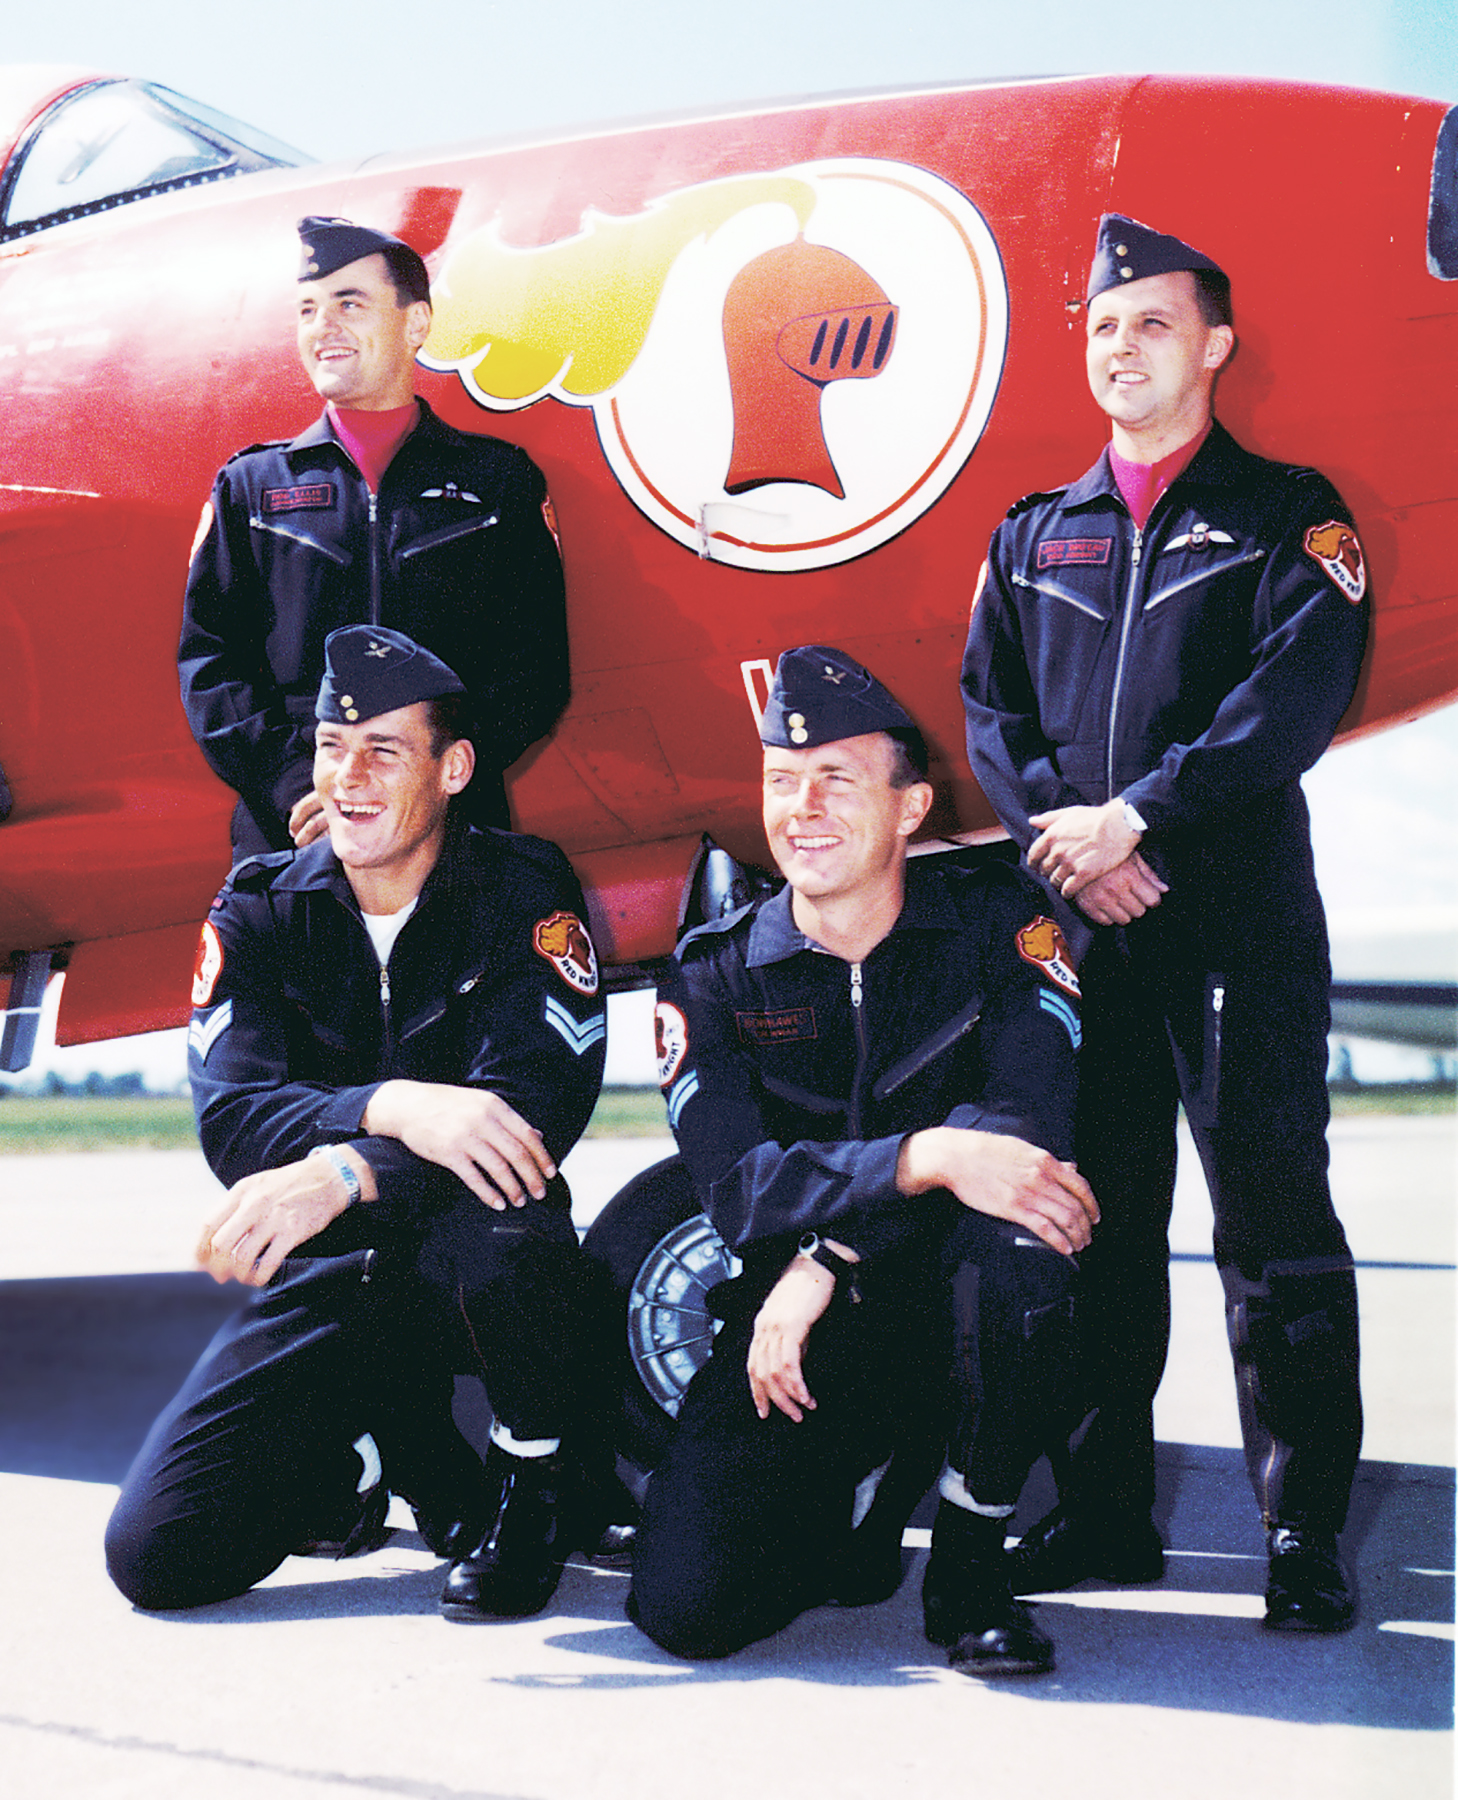 The Centennial version of the Red Knight team. Front row: Corporal Vince Kavic and Corporal Bob Hawes; back row: Flying Officer Rod Ellis and Flight Lieutenant Jack Waters. PHOTO: Courtesy of Lieutenant-Colonel (retired) Dan Dempsey